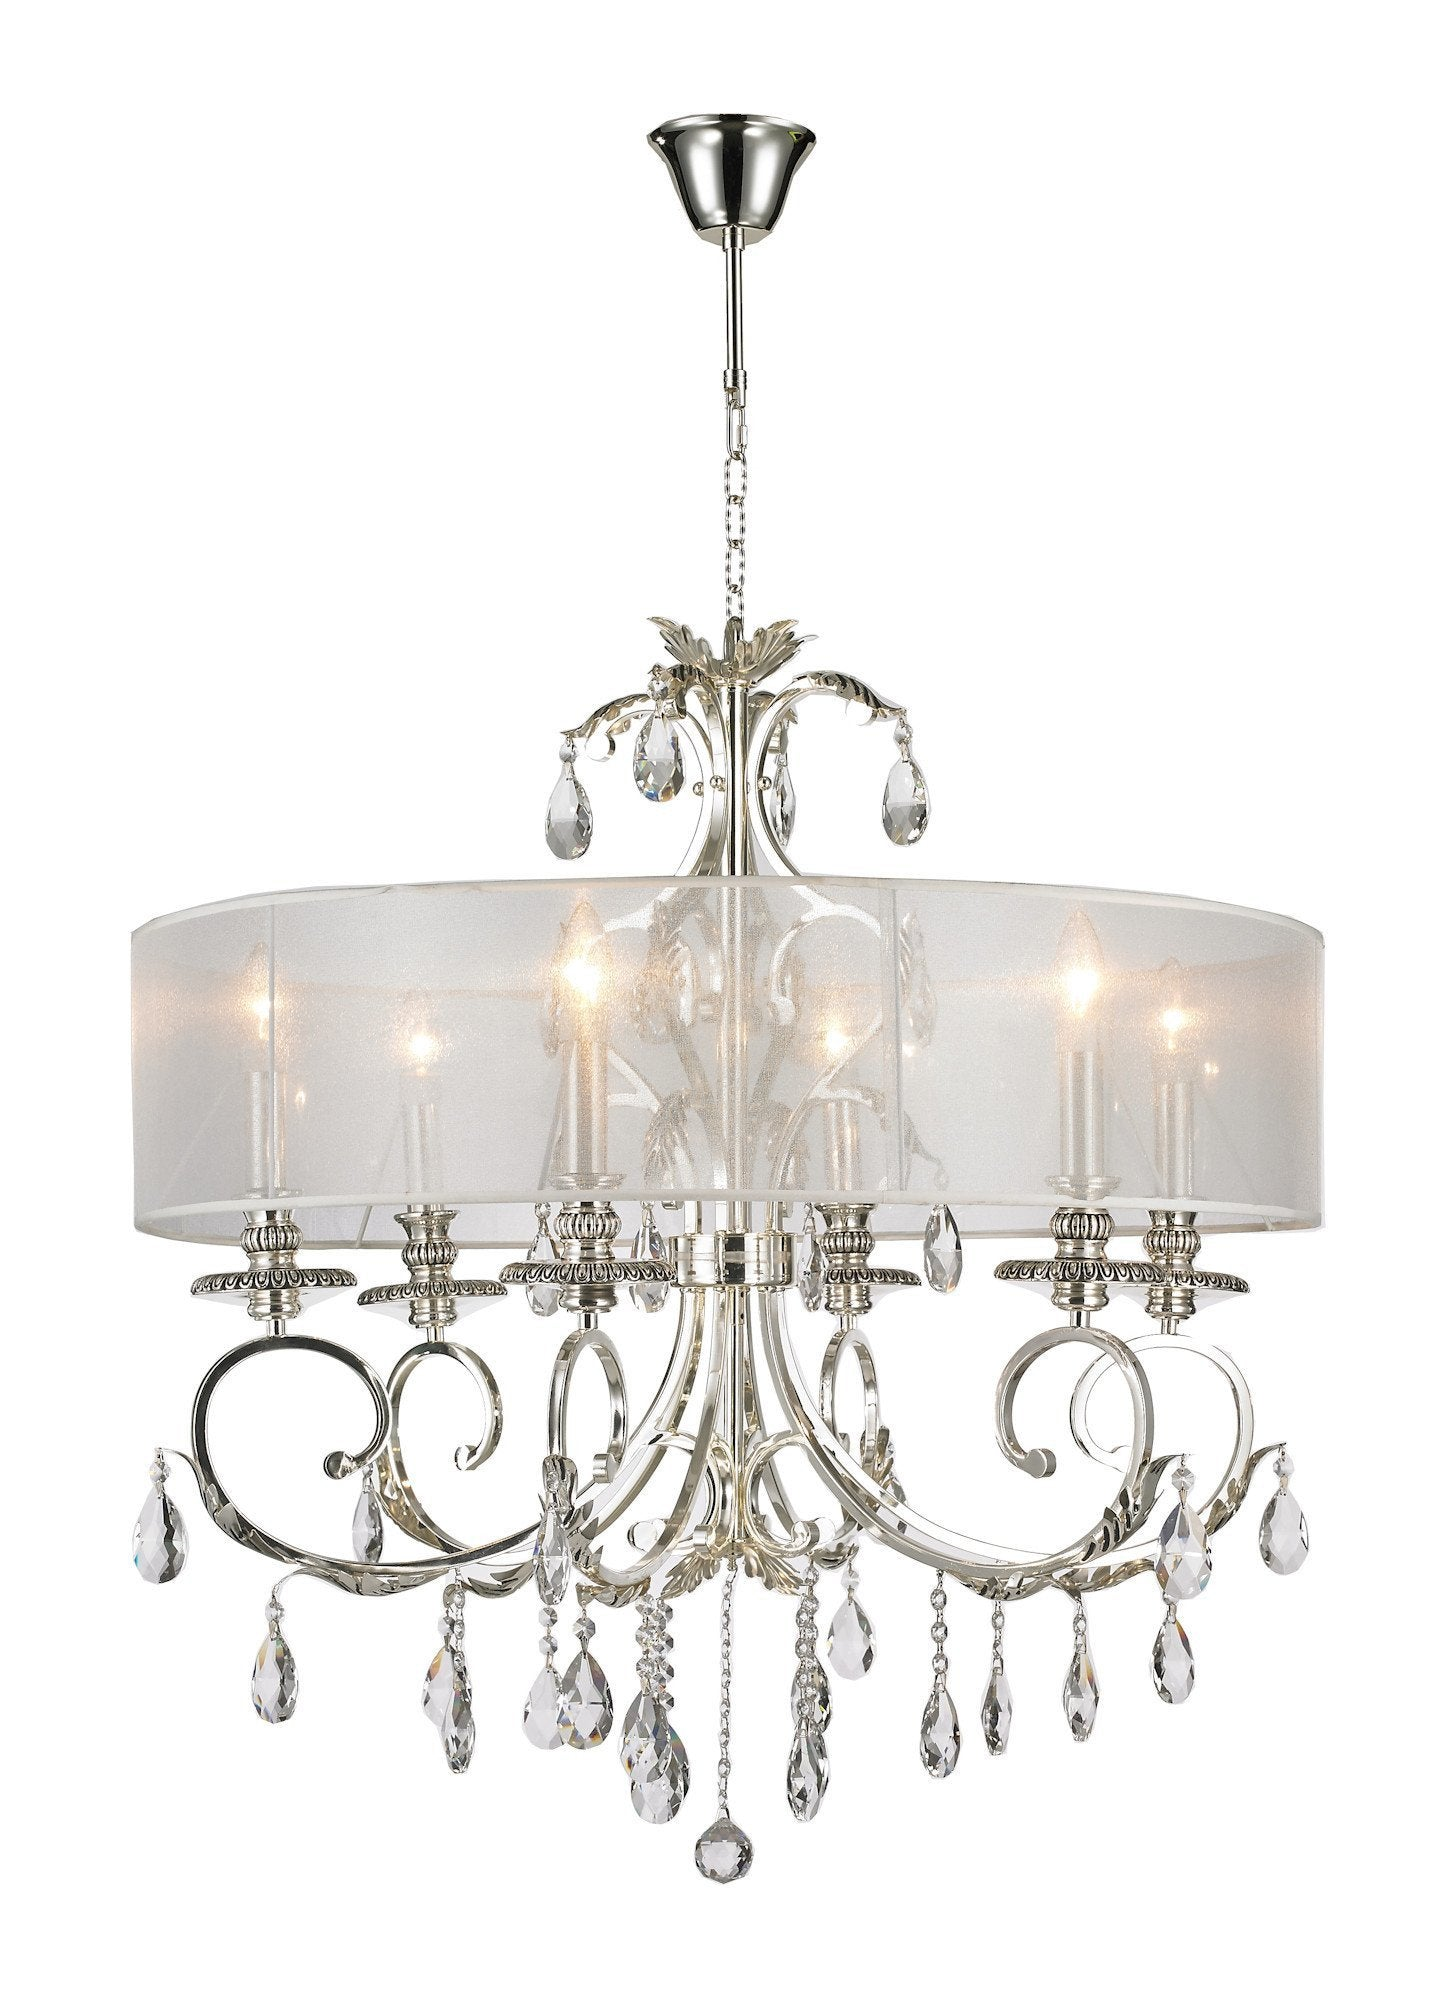 Aria Hampton ORB SHADE - Silver Plated - COLLECTION